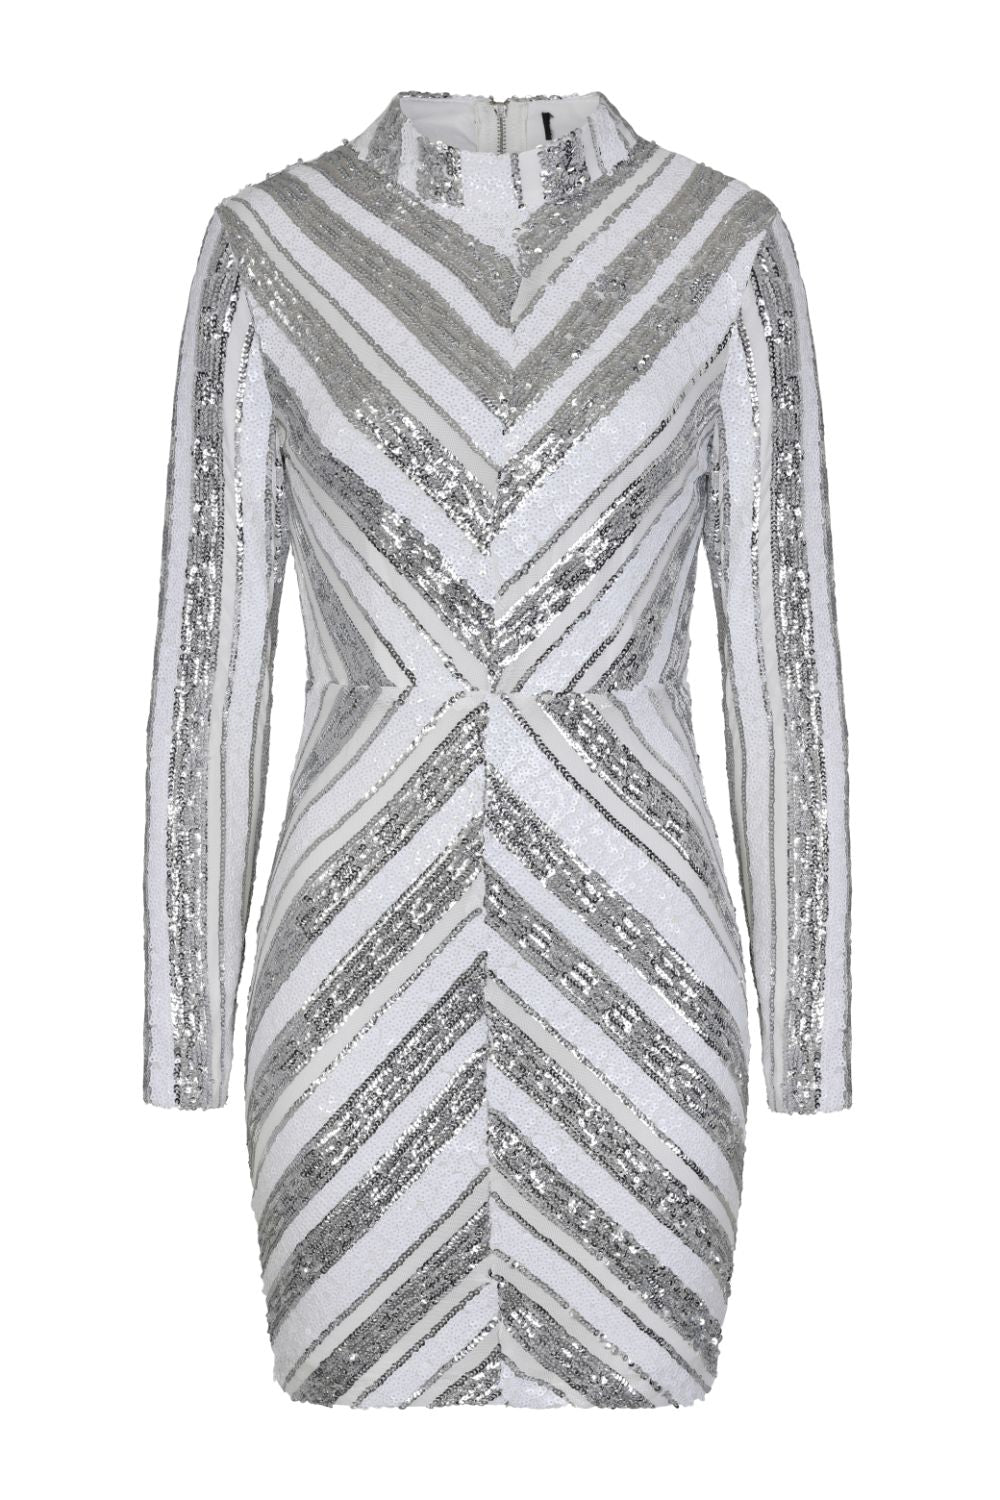 Turn Up White Silver Striped Sequin Bodycon Dress